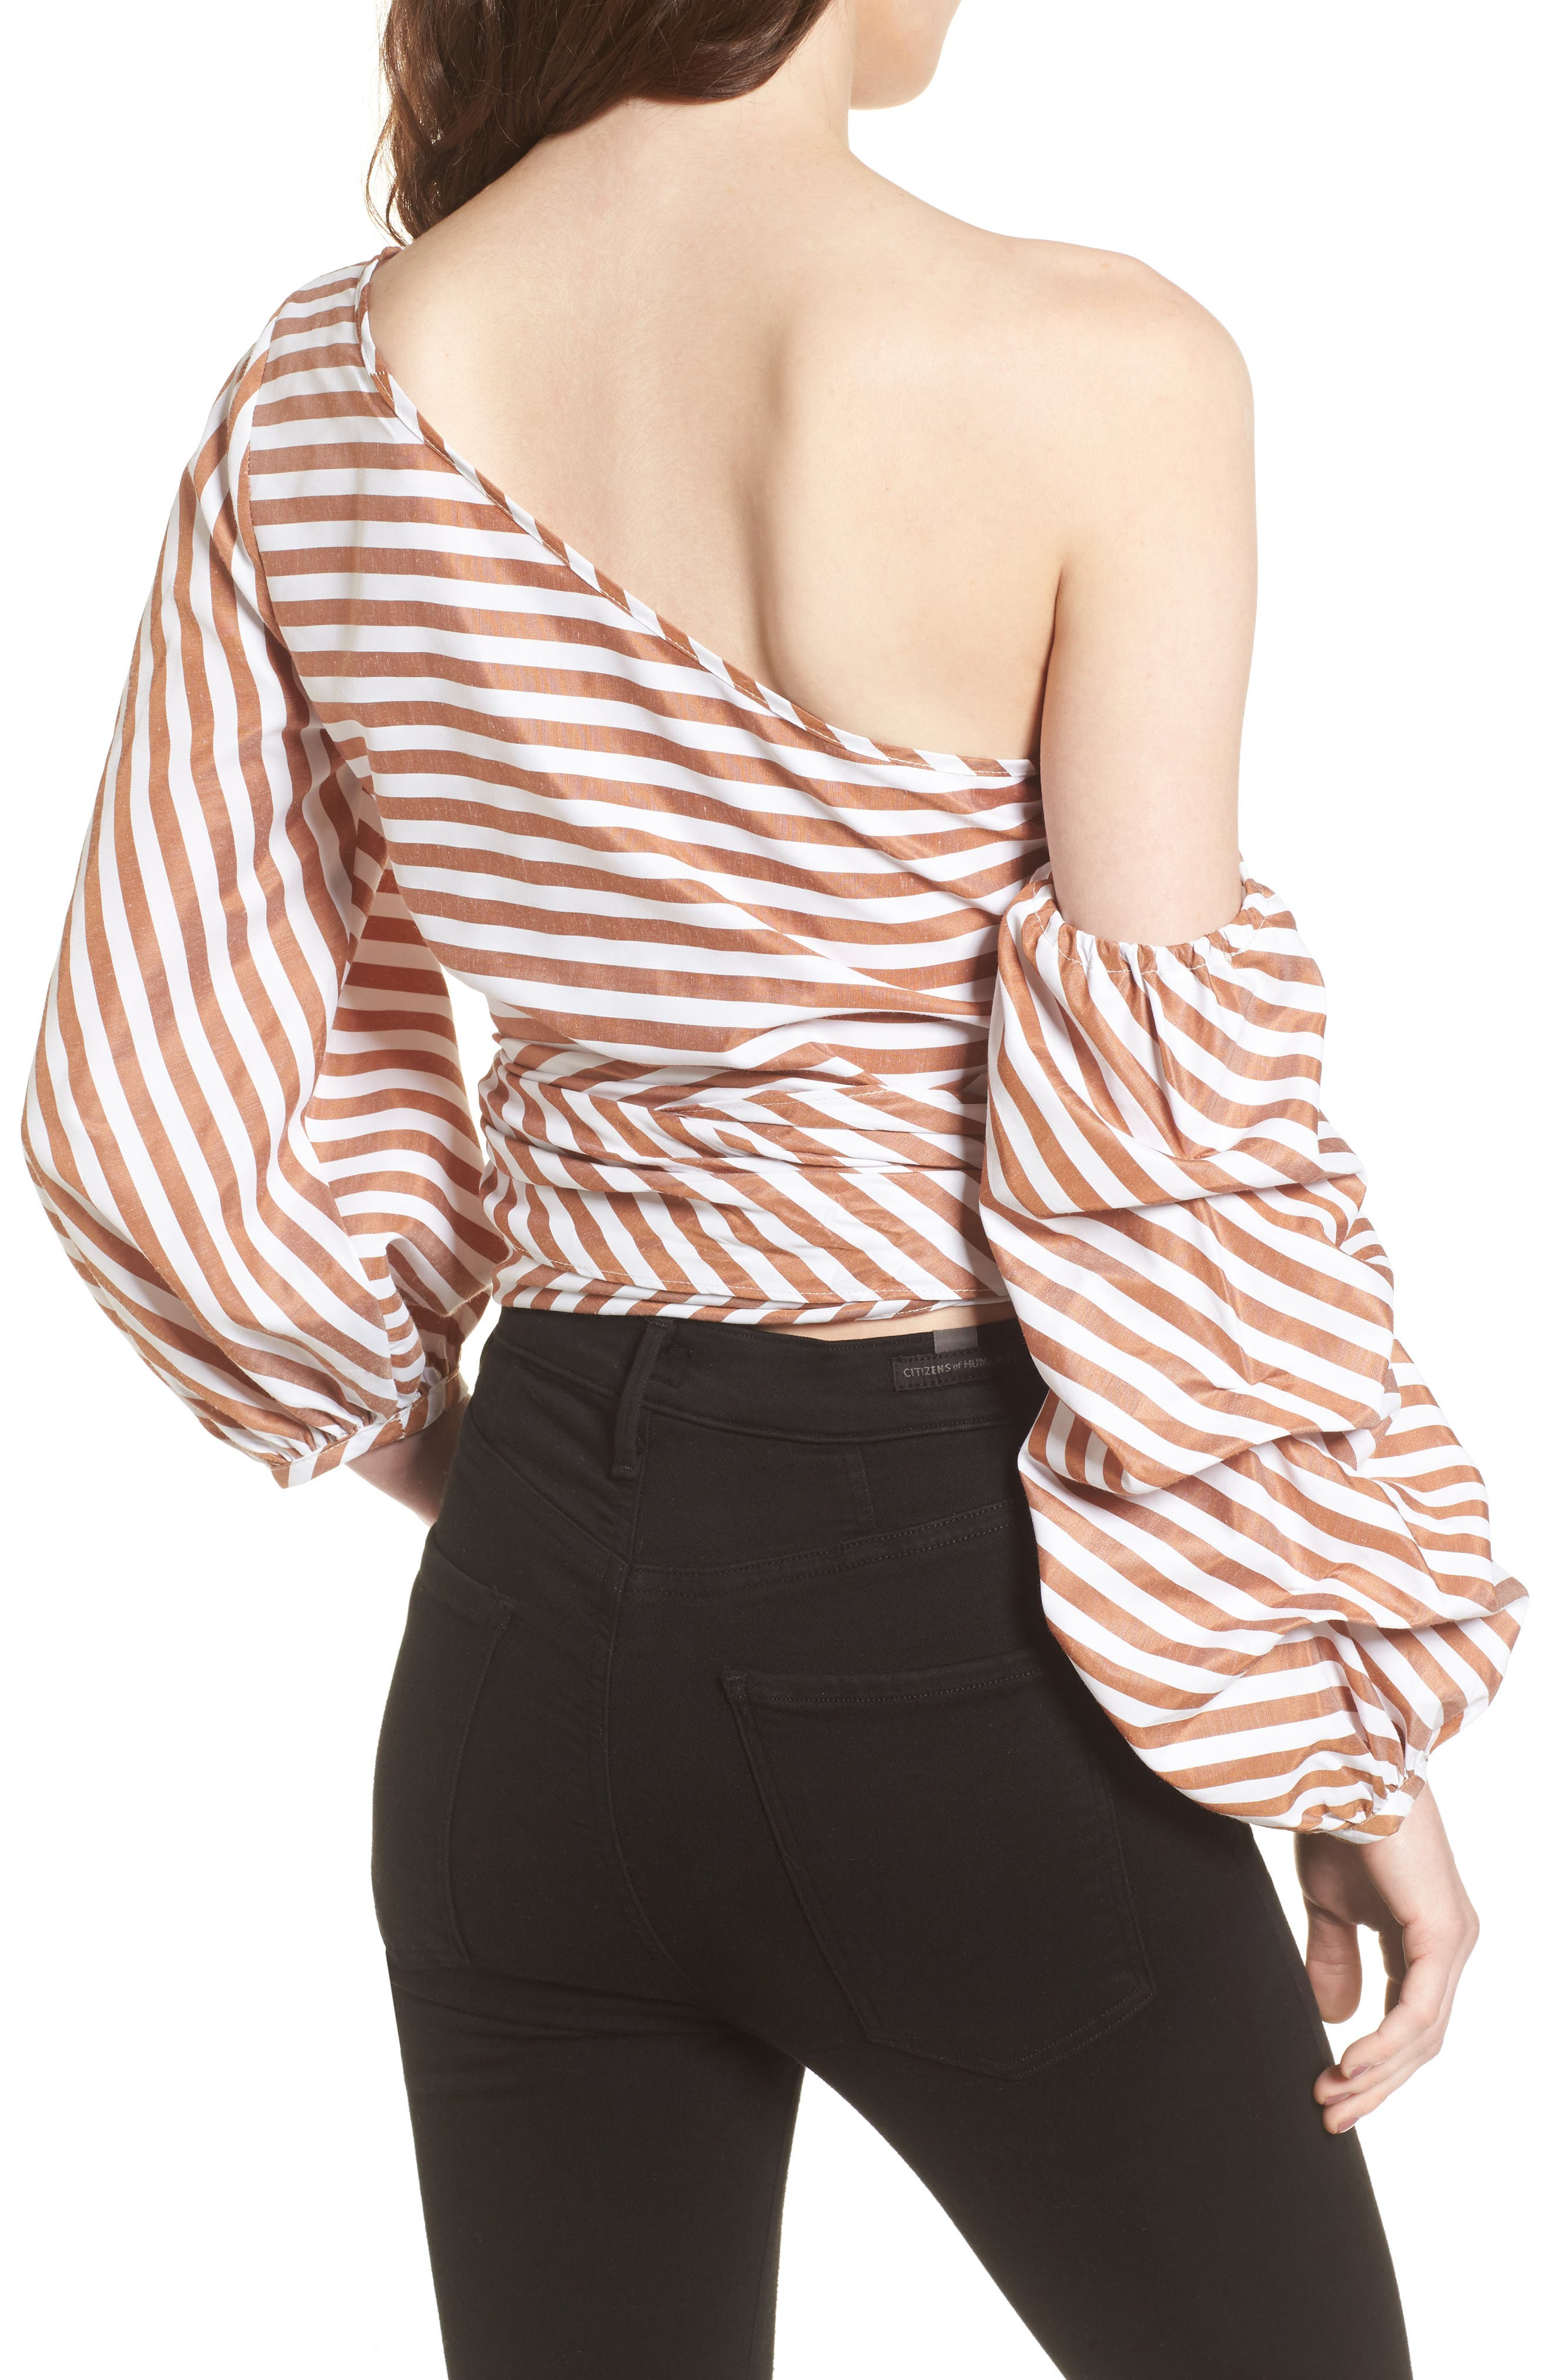 Wrap Me in Love One-Shoulder Top,                             Alternate thumbnail 2, color,                             Striped Brown